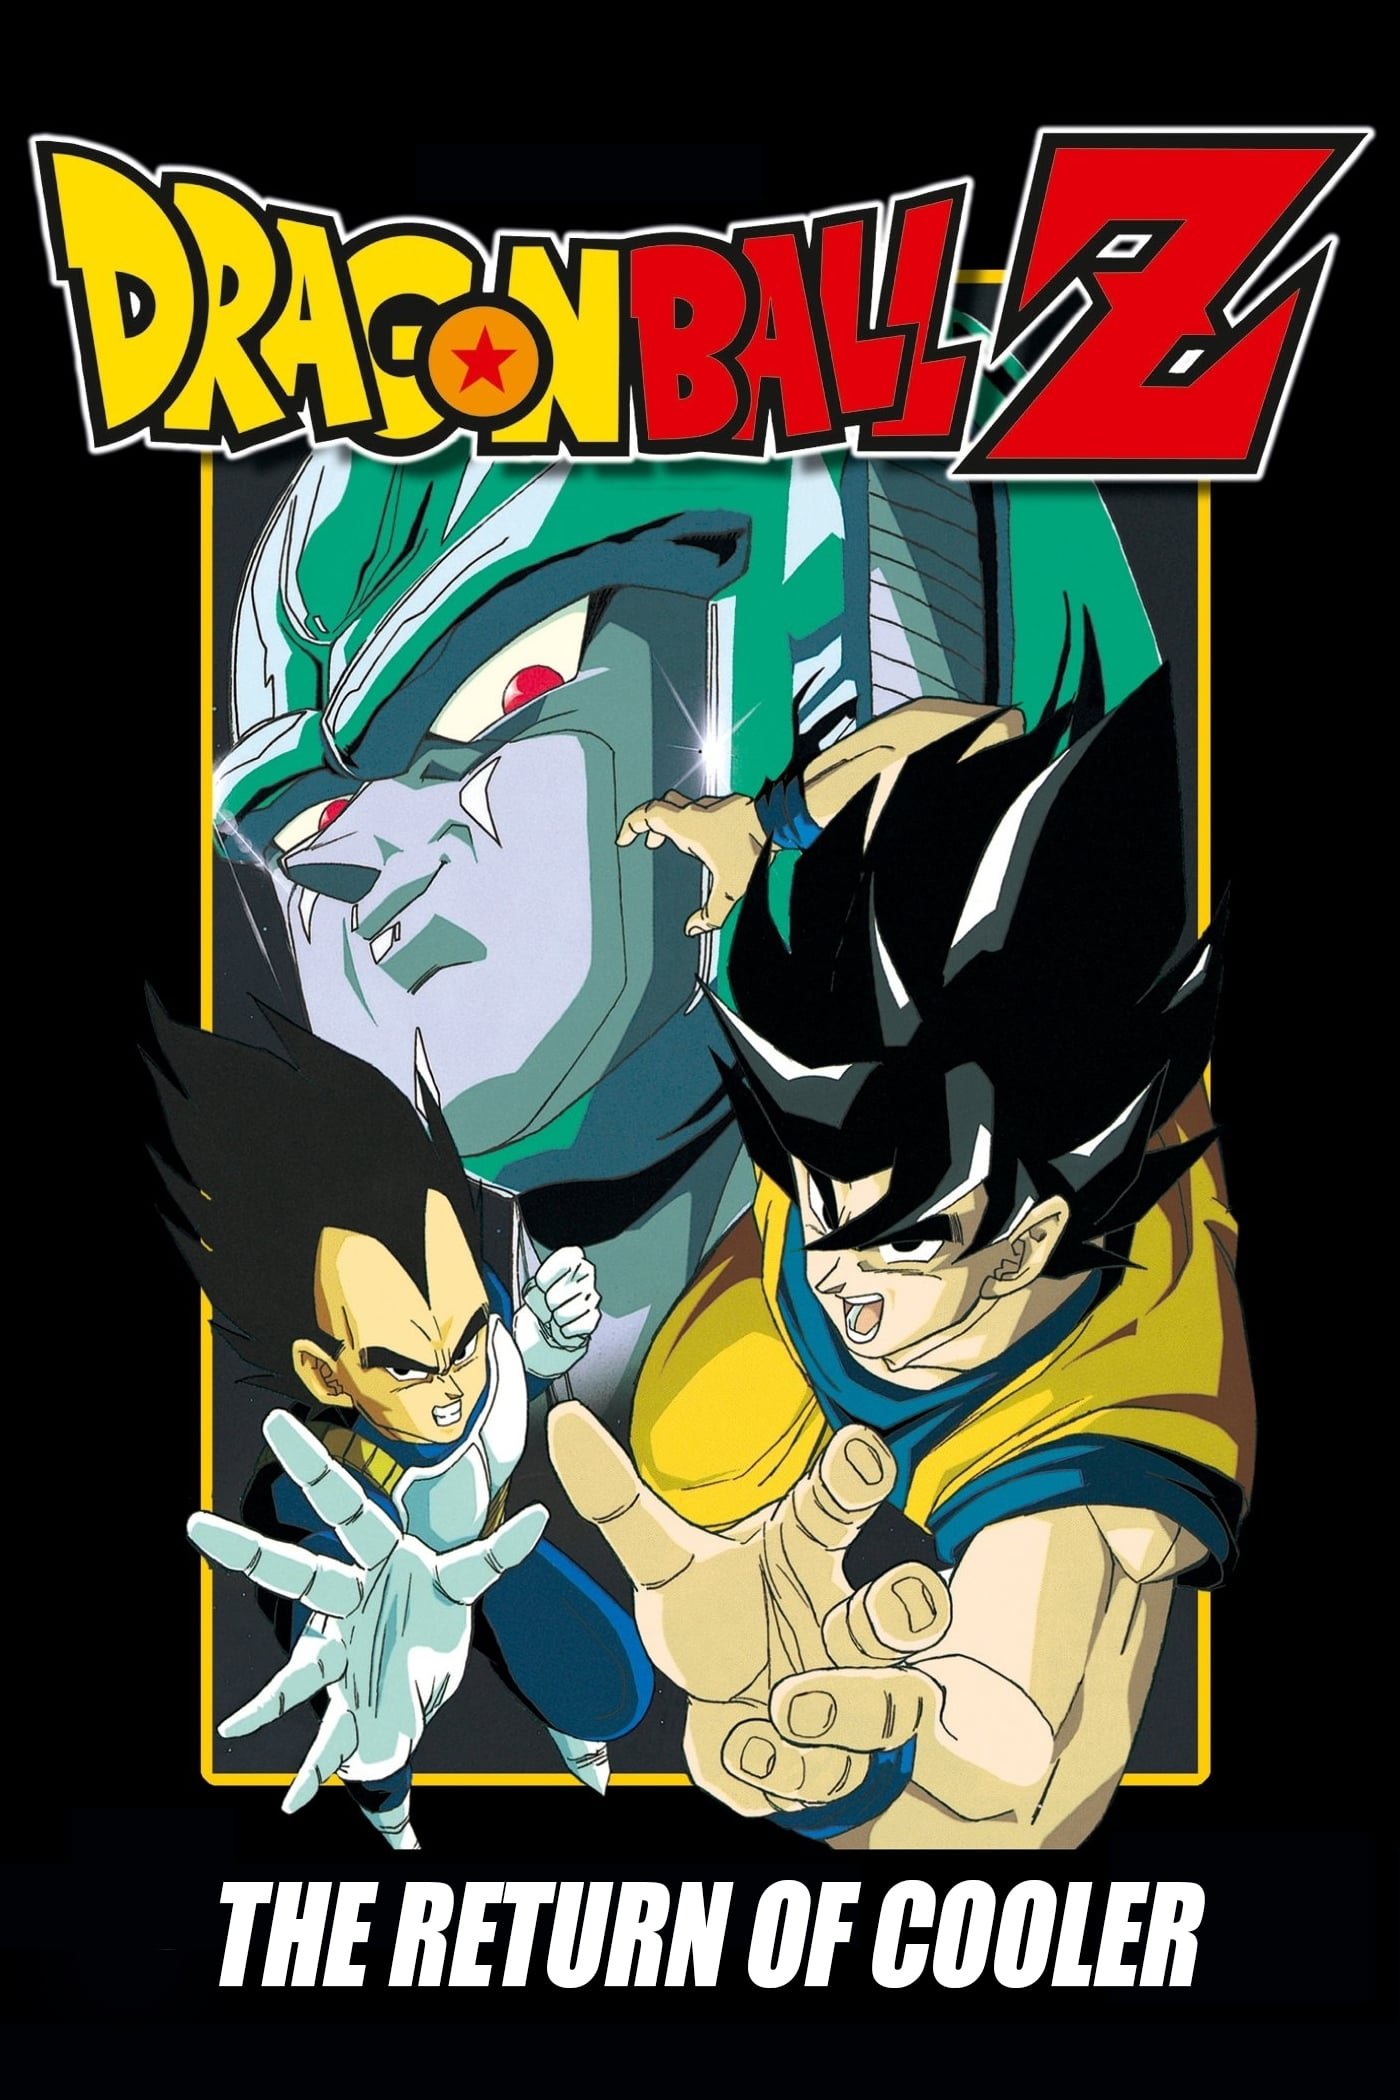 Dragon Ball Z: The Return of Cooler Me Titra Shqip